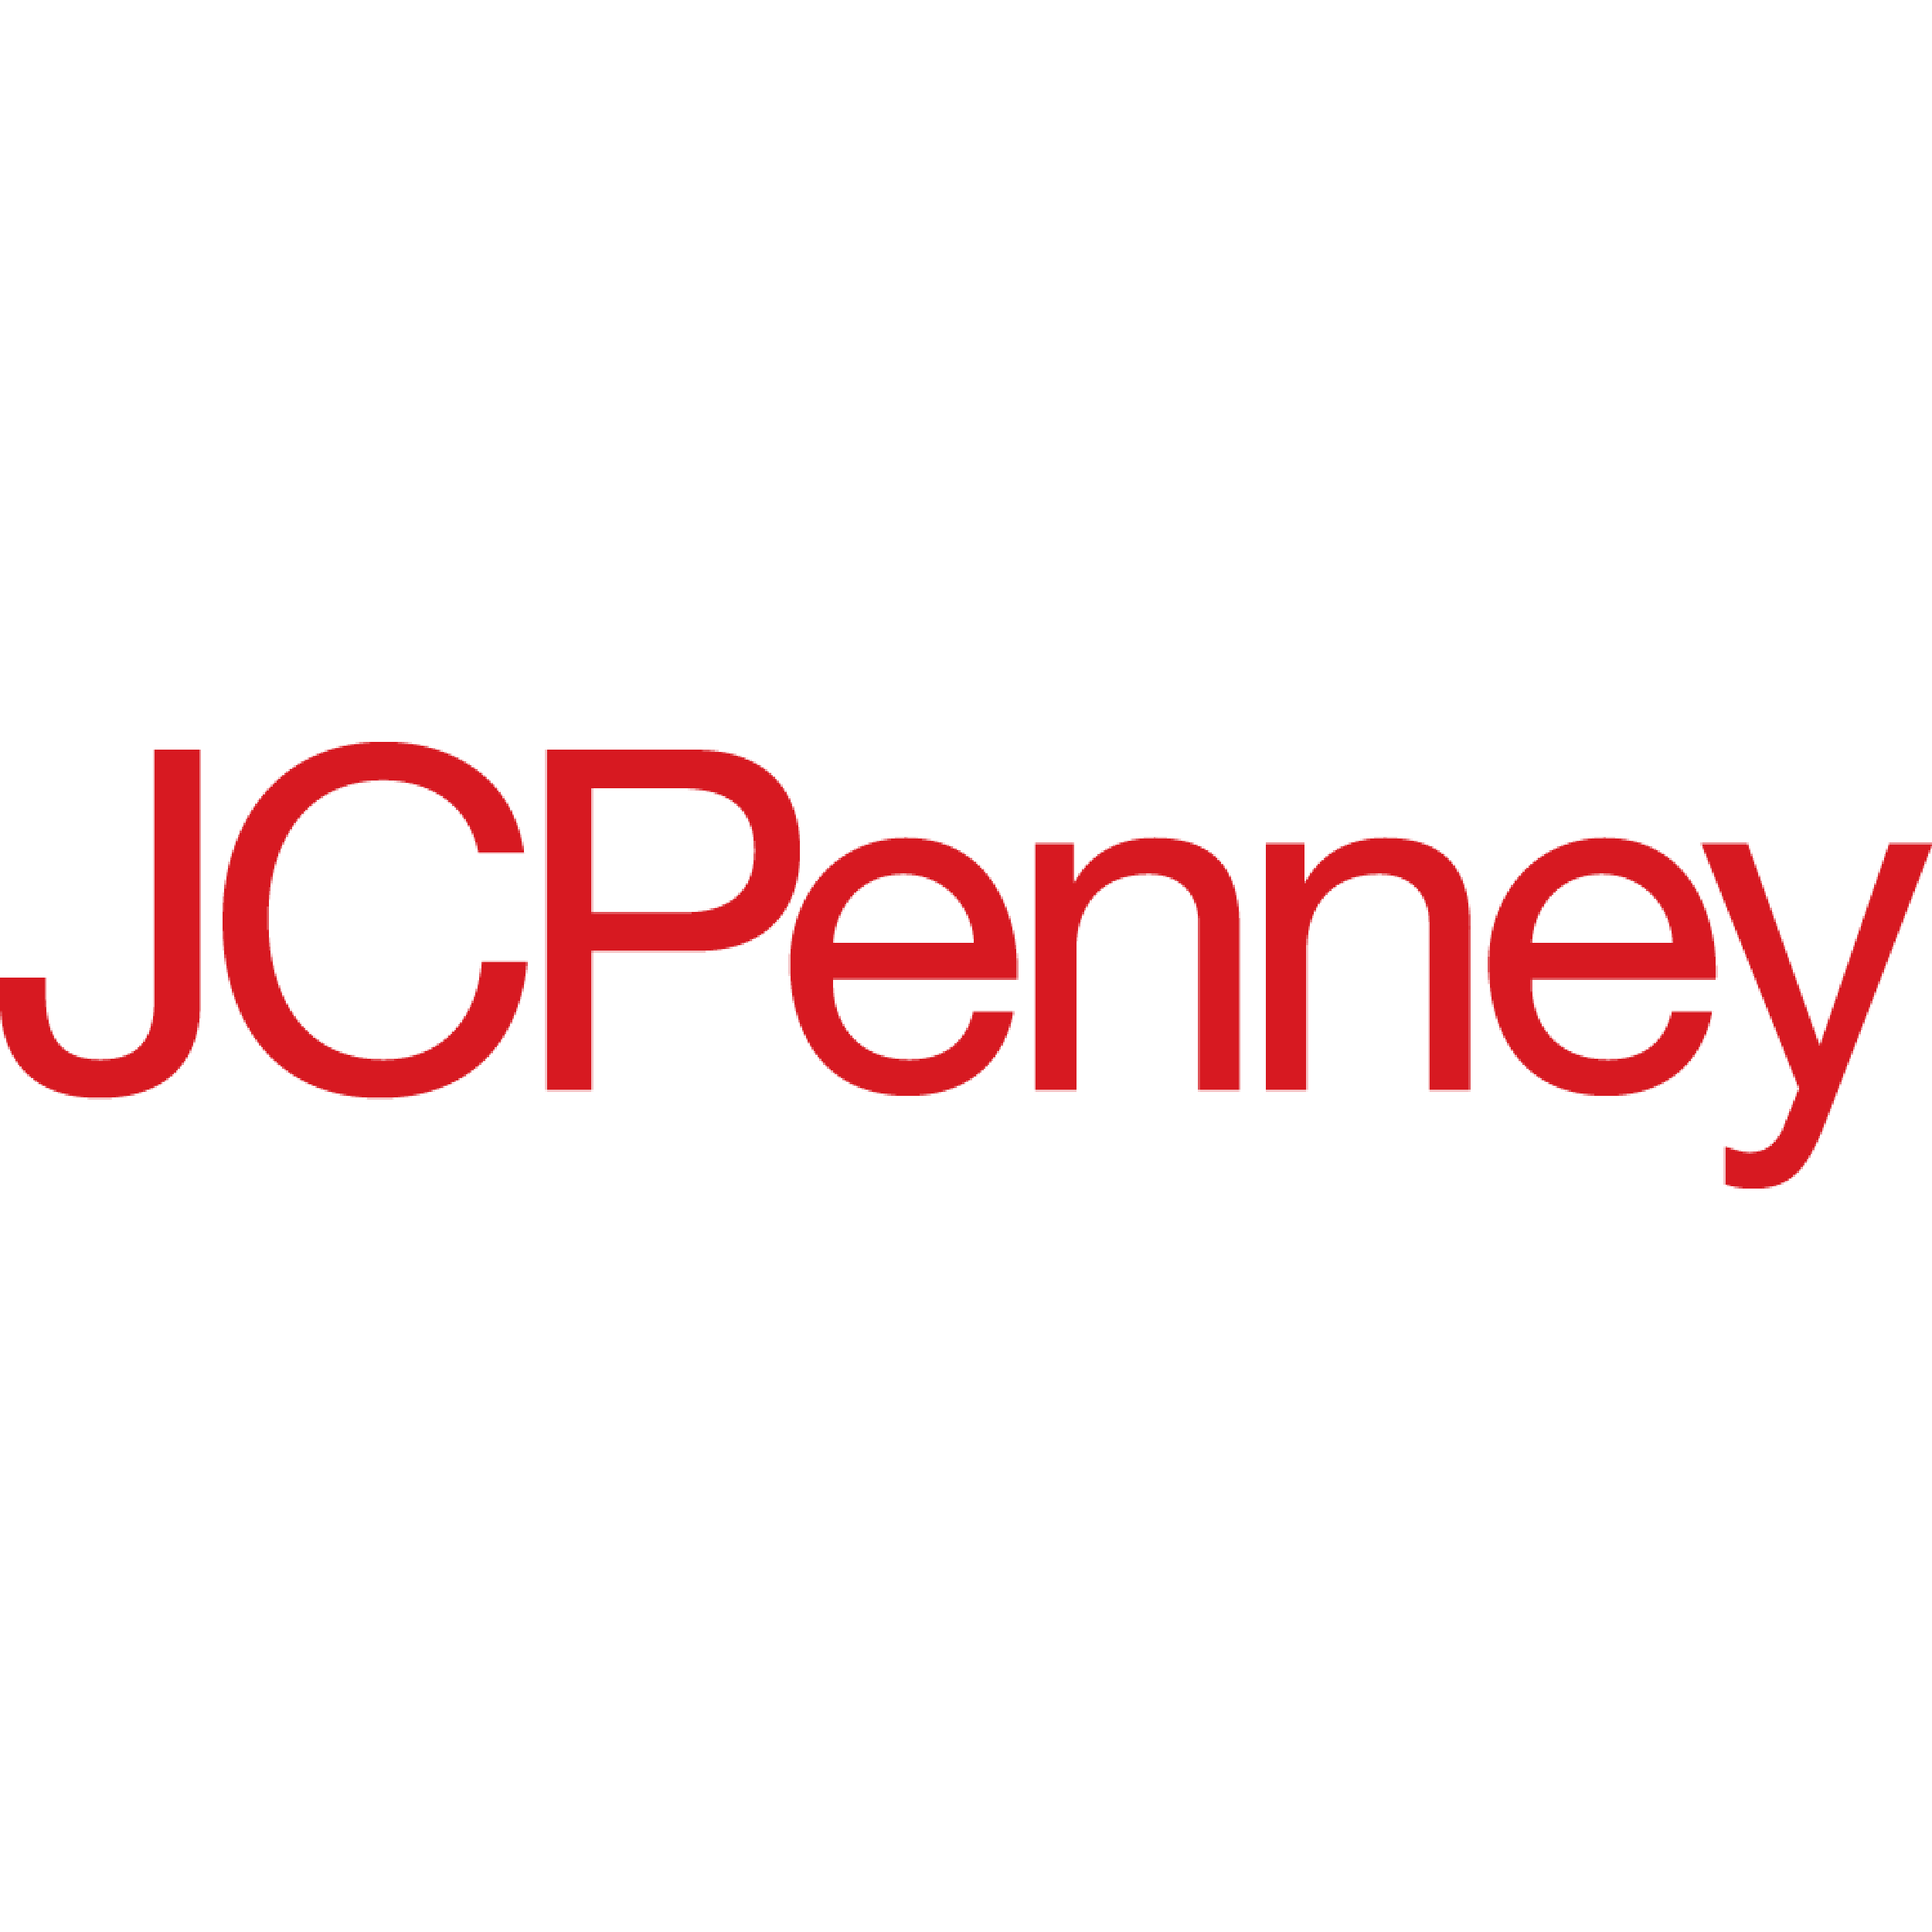 JCPenney - Hannibal, MO 63401 - (573)221-3713 | ShowMeLocal.com